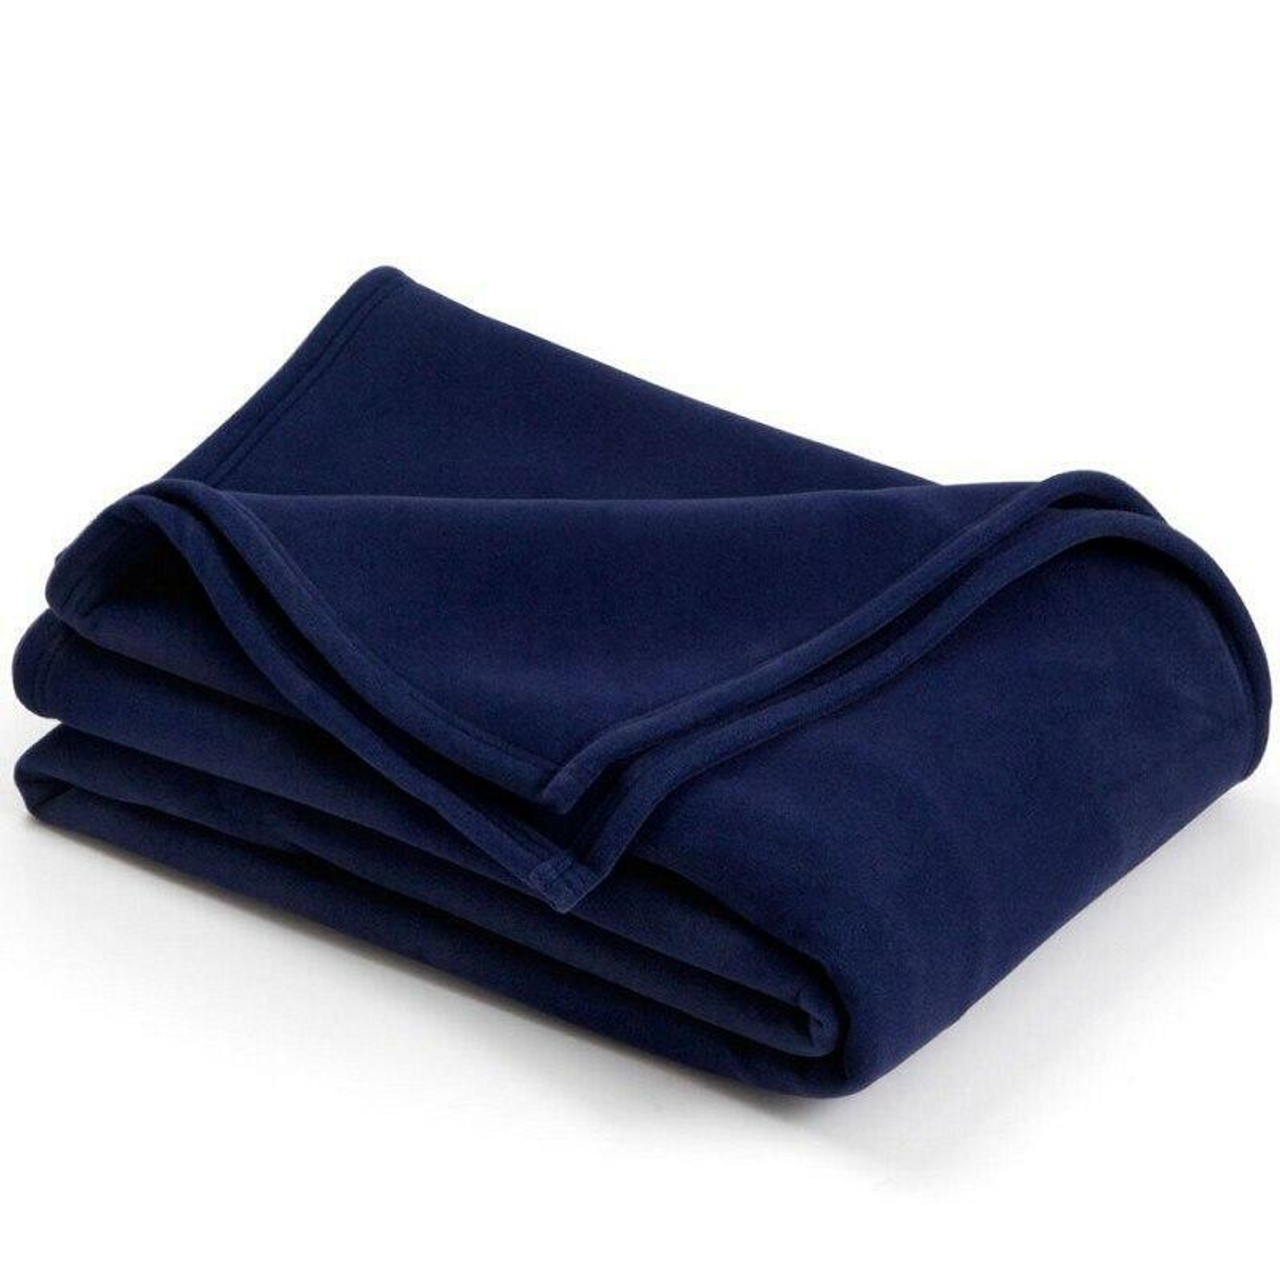 WestPoint/Martex Westpoint hospitality or Martex Vellux Hotel Blanket or Priced by the case